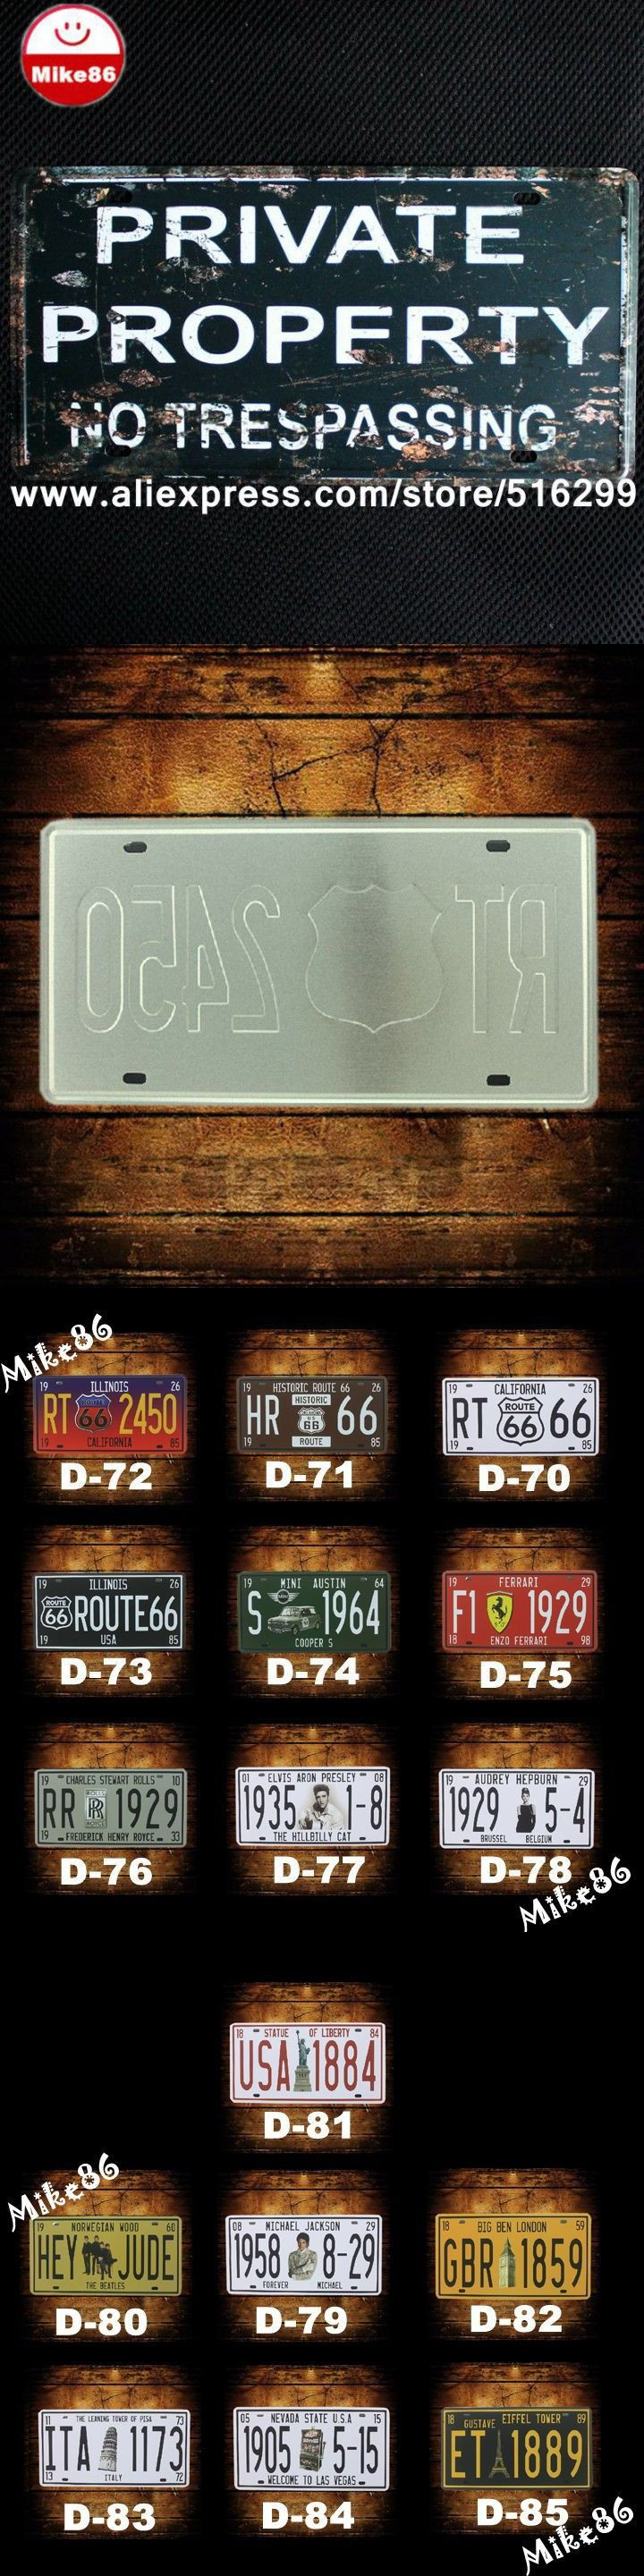 [ Mike86 ] Private Propfrty NO TRESPASSING License Plates Vintage bar decoration Metal signs D-245 Mix order 30*15 CM $14.99